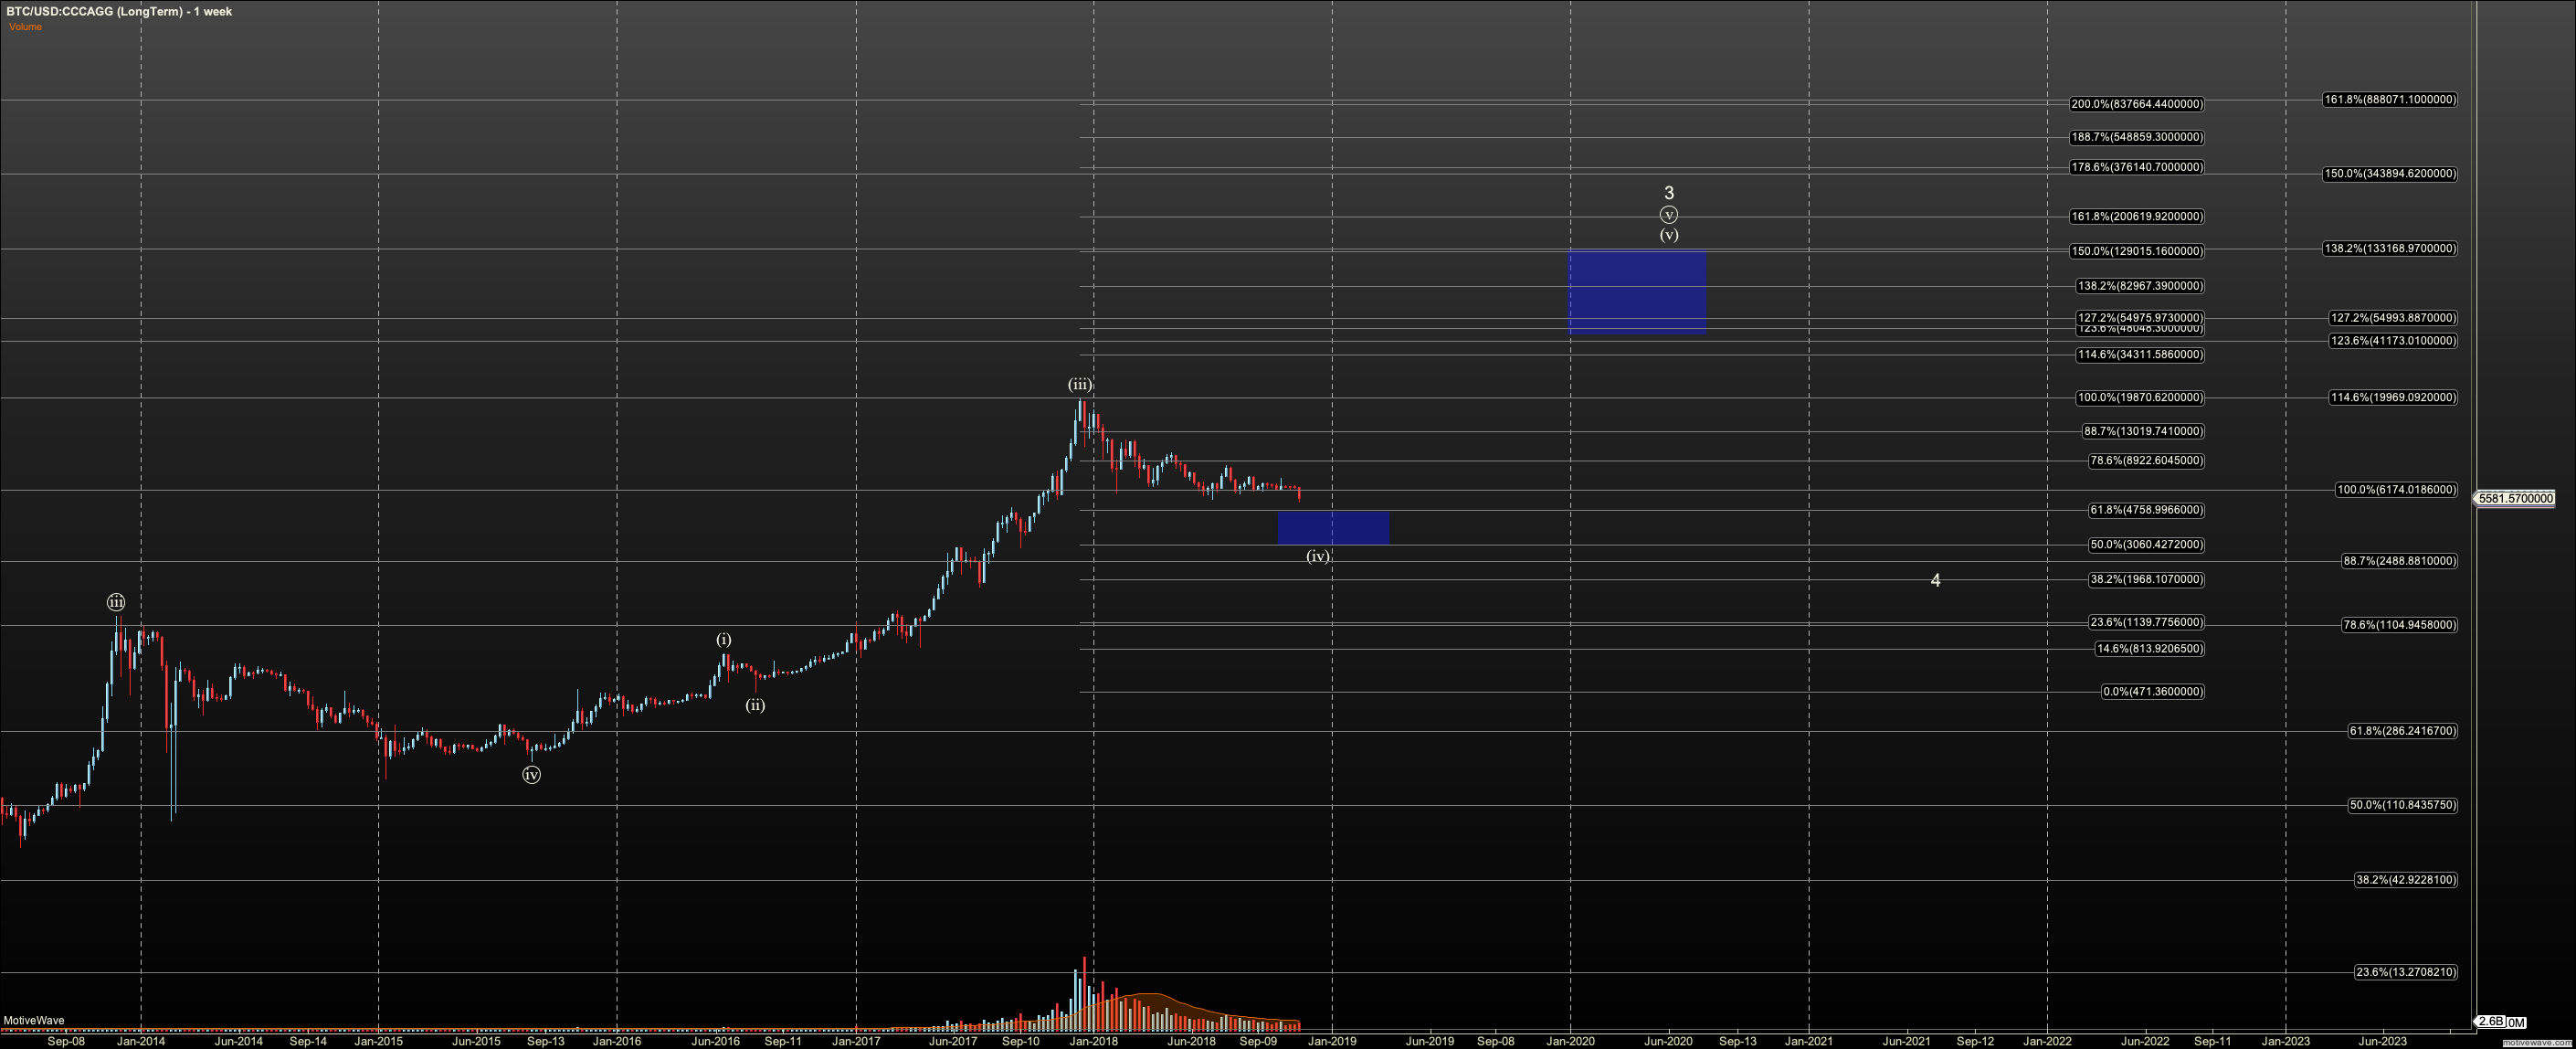 BTCUSD - LongTerm - Nov-15 1530 PM (1 week)